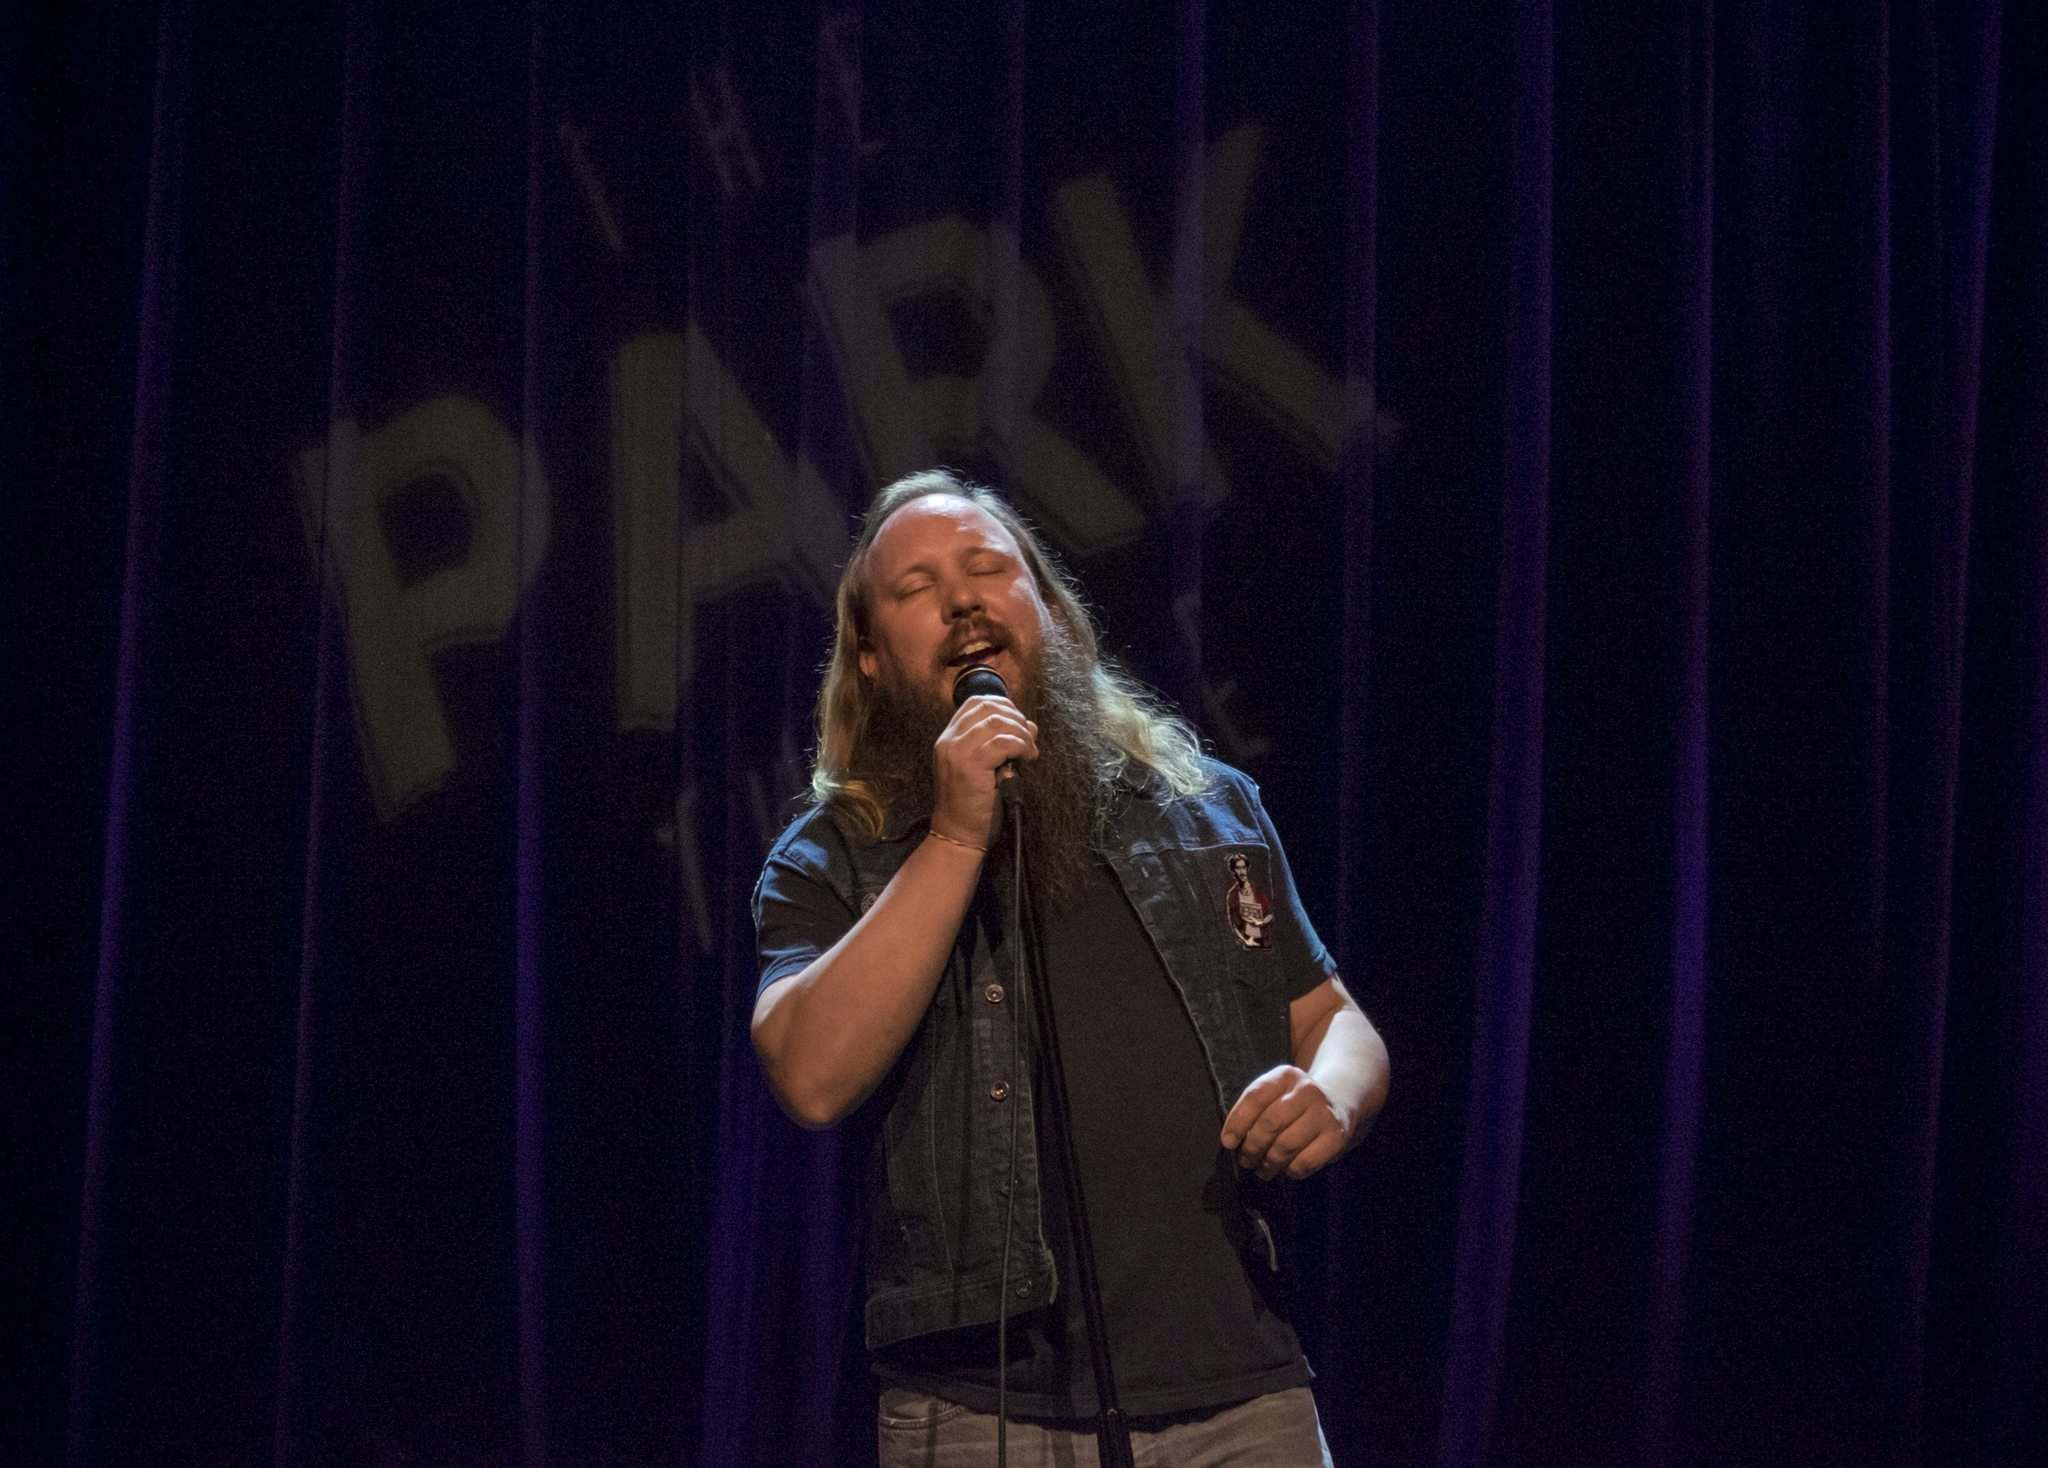 ZACHARY PRONG / WINNIPEG FREE PRESS</p><p>Graham Clark performs at The Park Theatre for the 2016 Oddblock Block Party Comedy Festival on August 25, 2016. The festival runs until Sunday and will see over 50 performers at 29 shows in 6 different locations.</p></p></p>